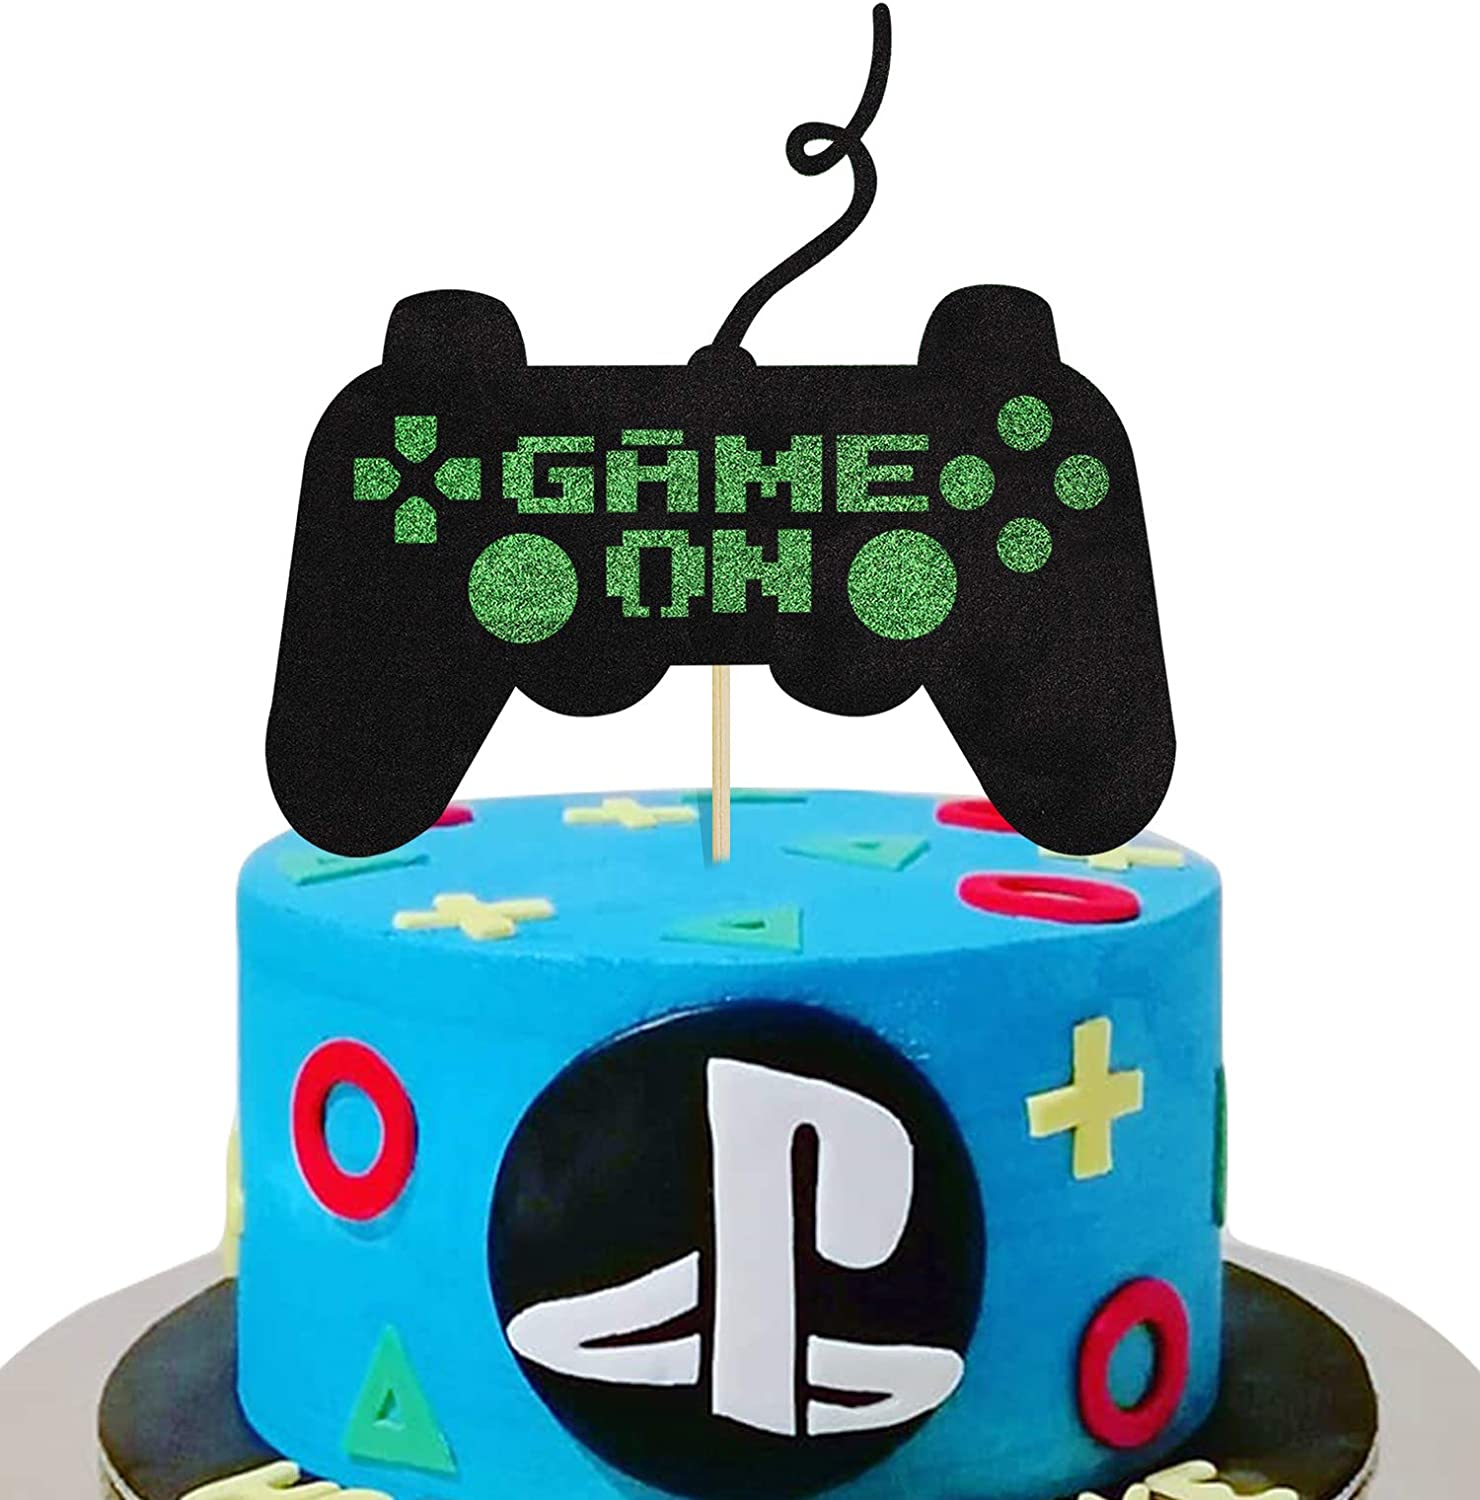 Kapokku Game On Cake Topper Game Themed Birthday Party Supplies Fortnite Video Game Cake Ddecorations For Boys Amazon Com Grocery Gourmet Food Fortnite's 1st birthday challenges are now live! kapokku game on cake topper game themed birthday party supplies fortnite video game cake ddecorations for boys